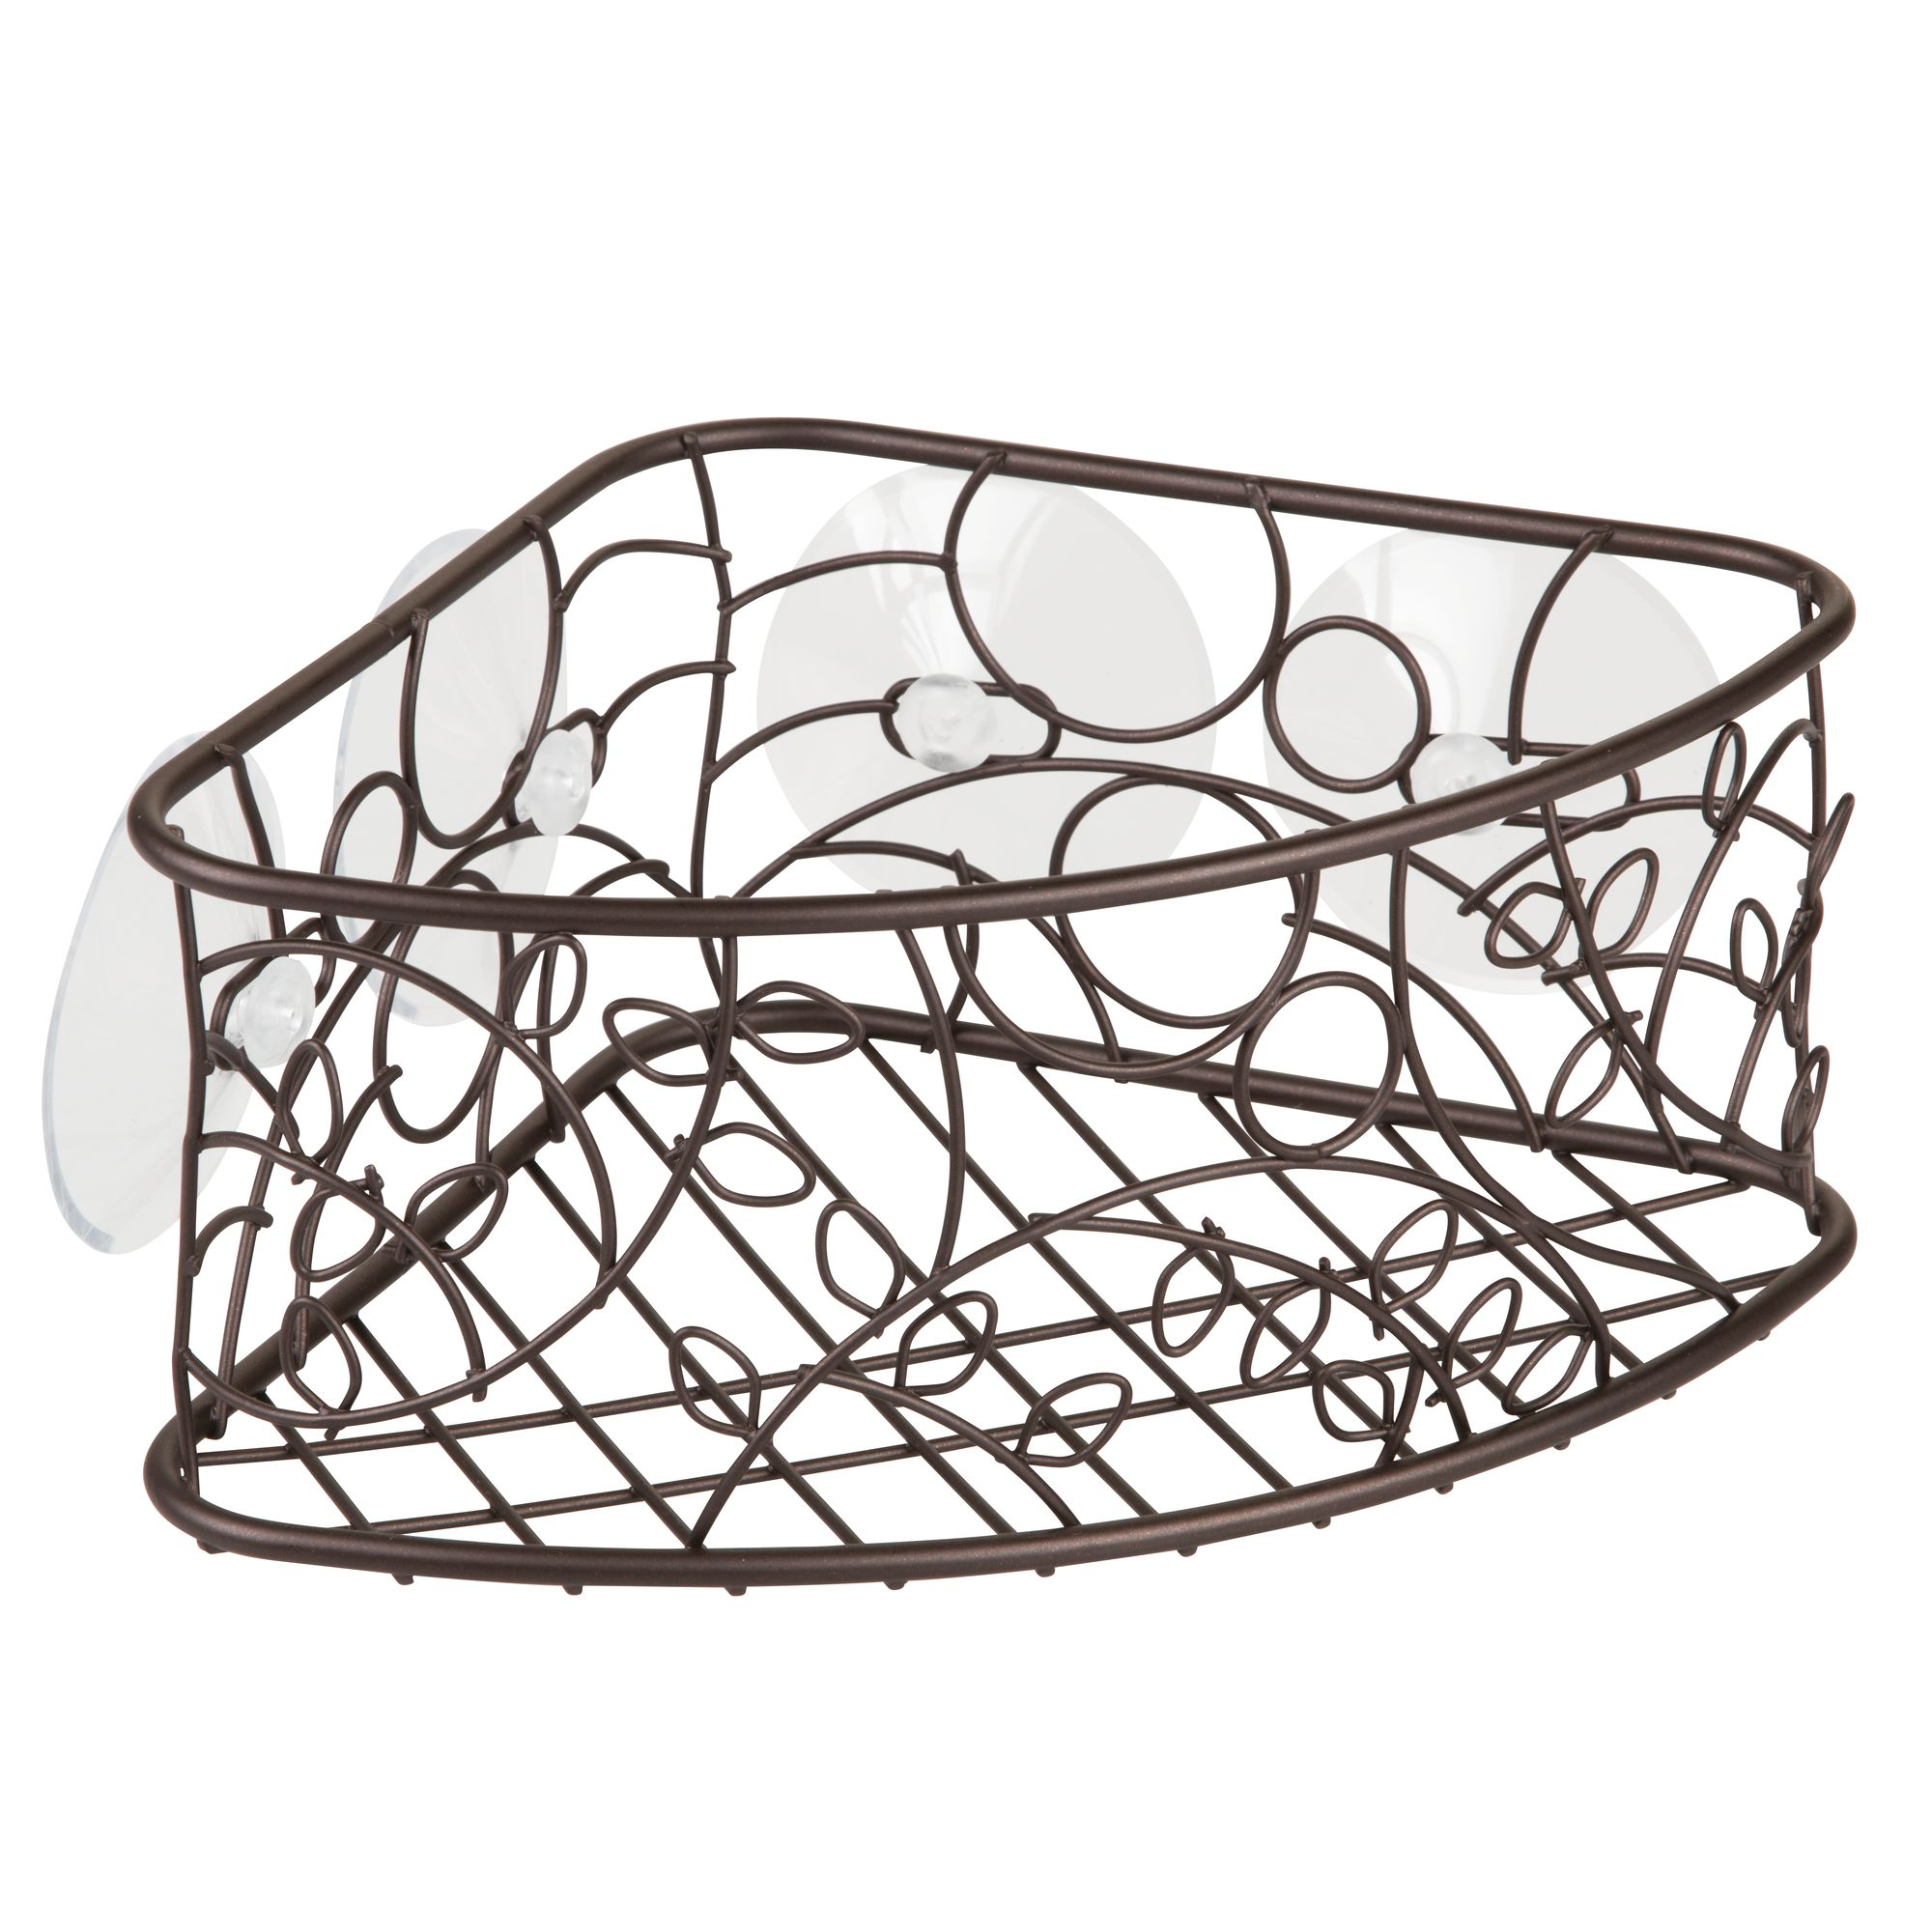 InterDesign Twigz Suction Corner Basket, Bronze